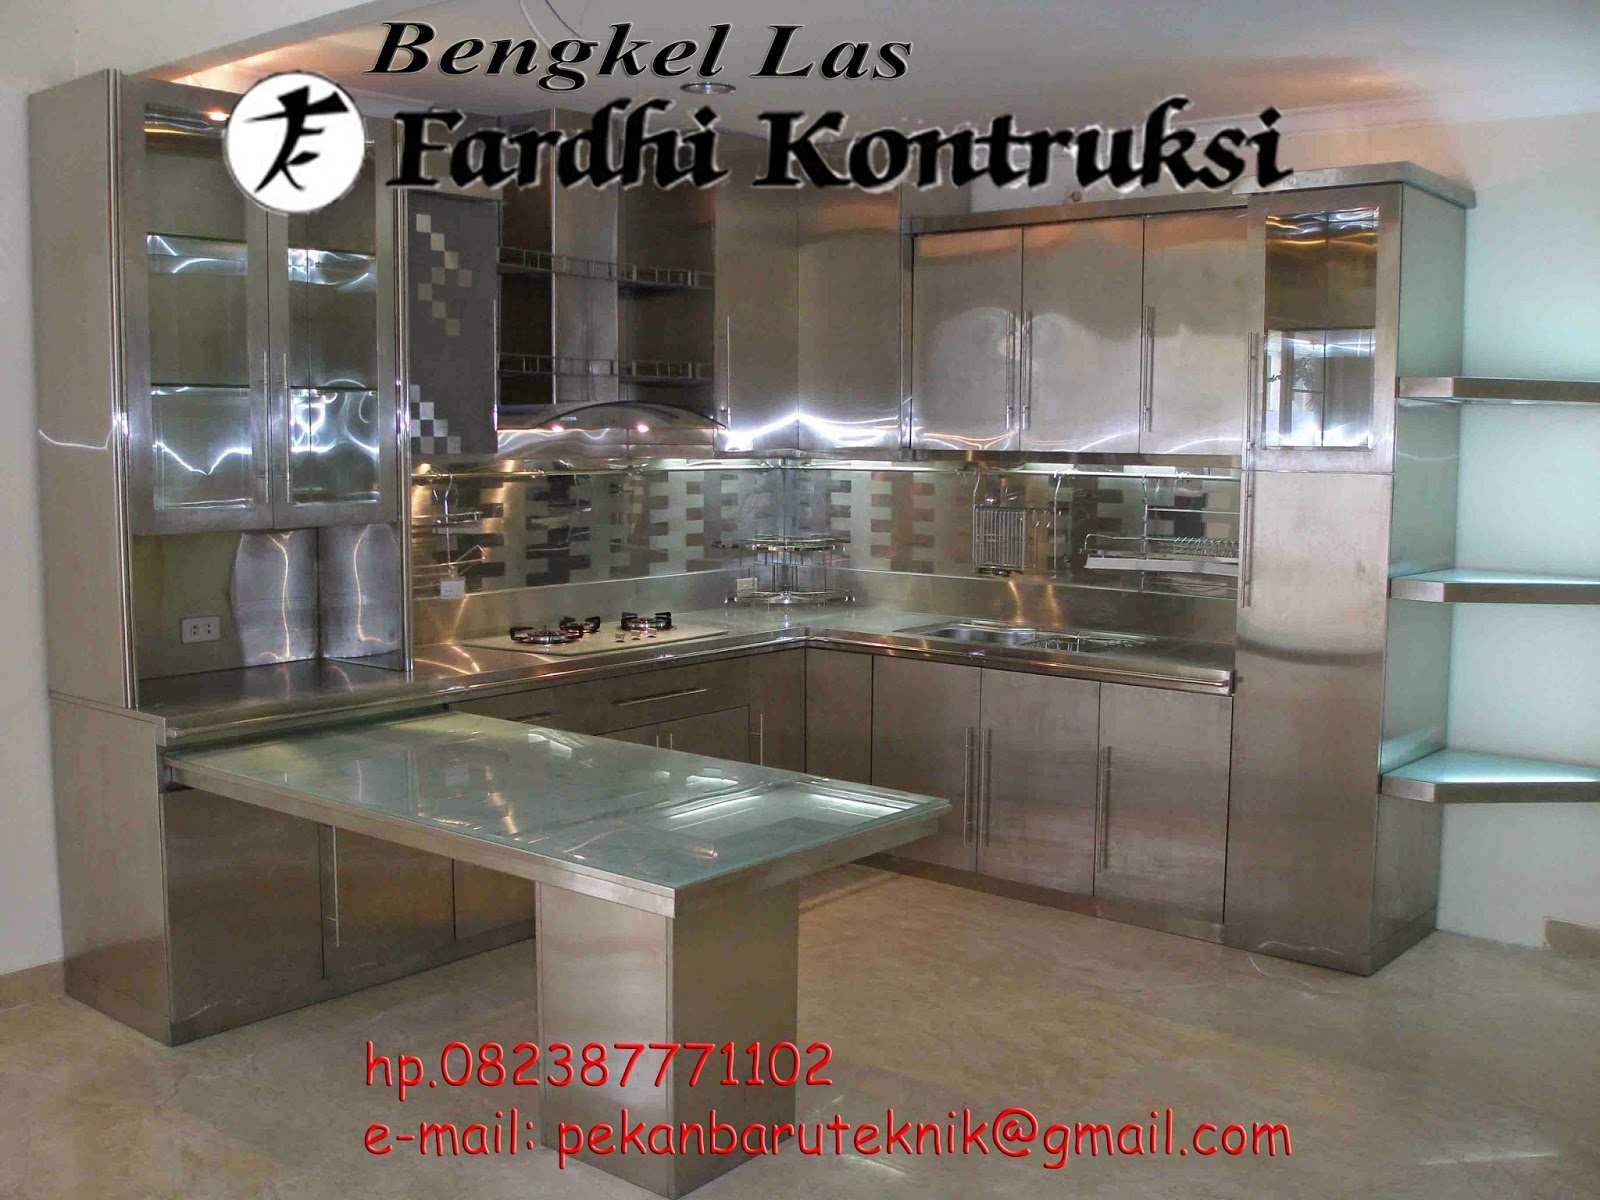 Bengkel las murah pekanbaru kitchen set rak rak dan lemari for Harga kitchen set stainless steel